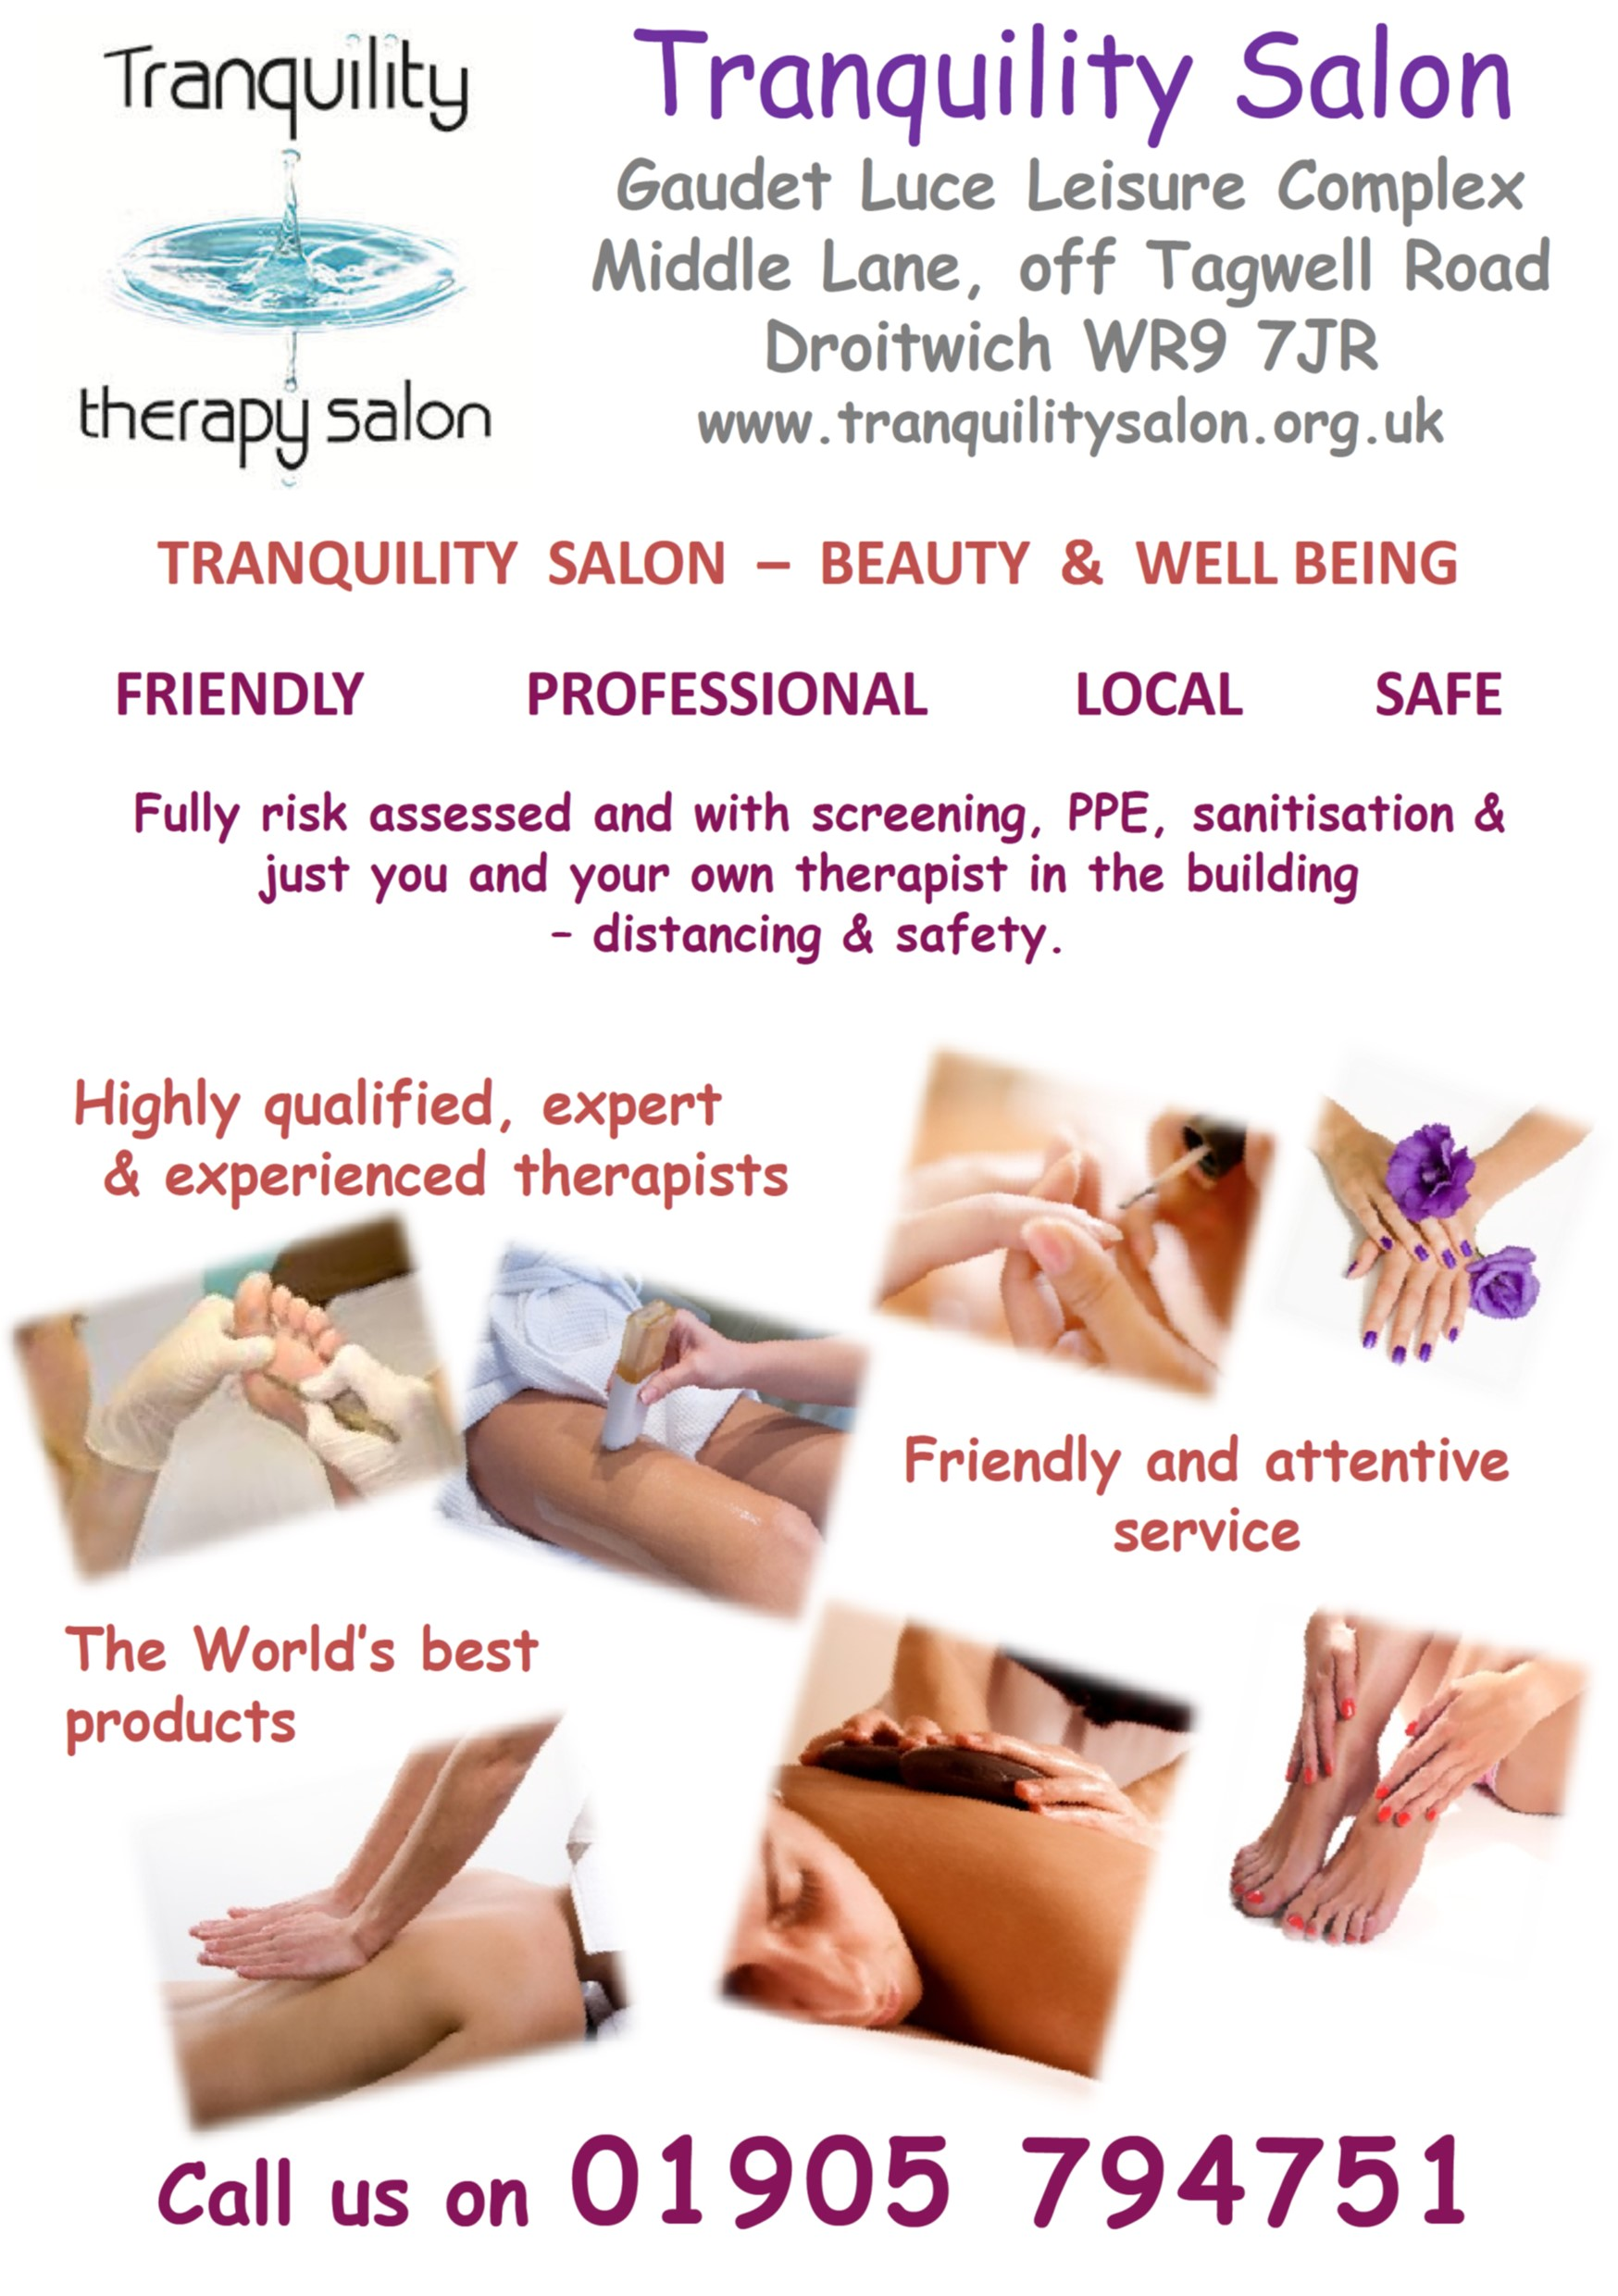 Tranquility Salon Droitwich Beauty and Well Being - Try us 1st Local Traders